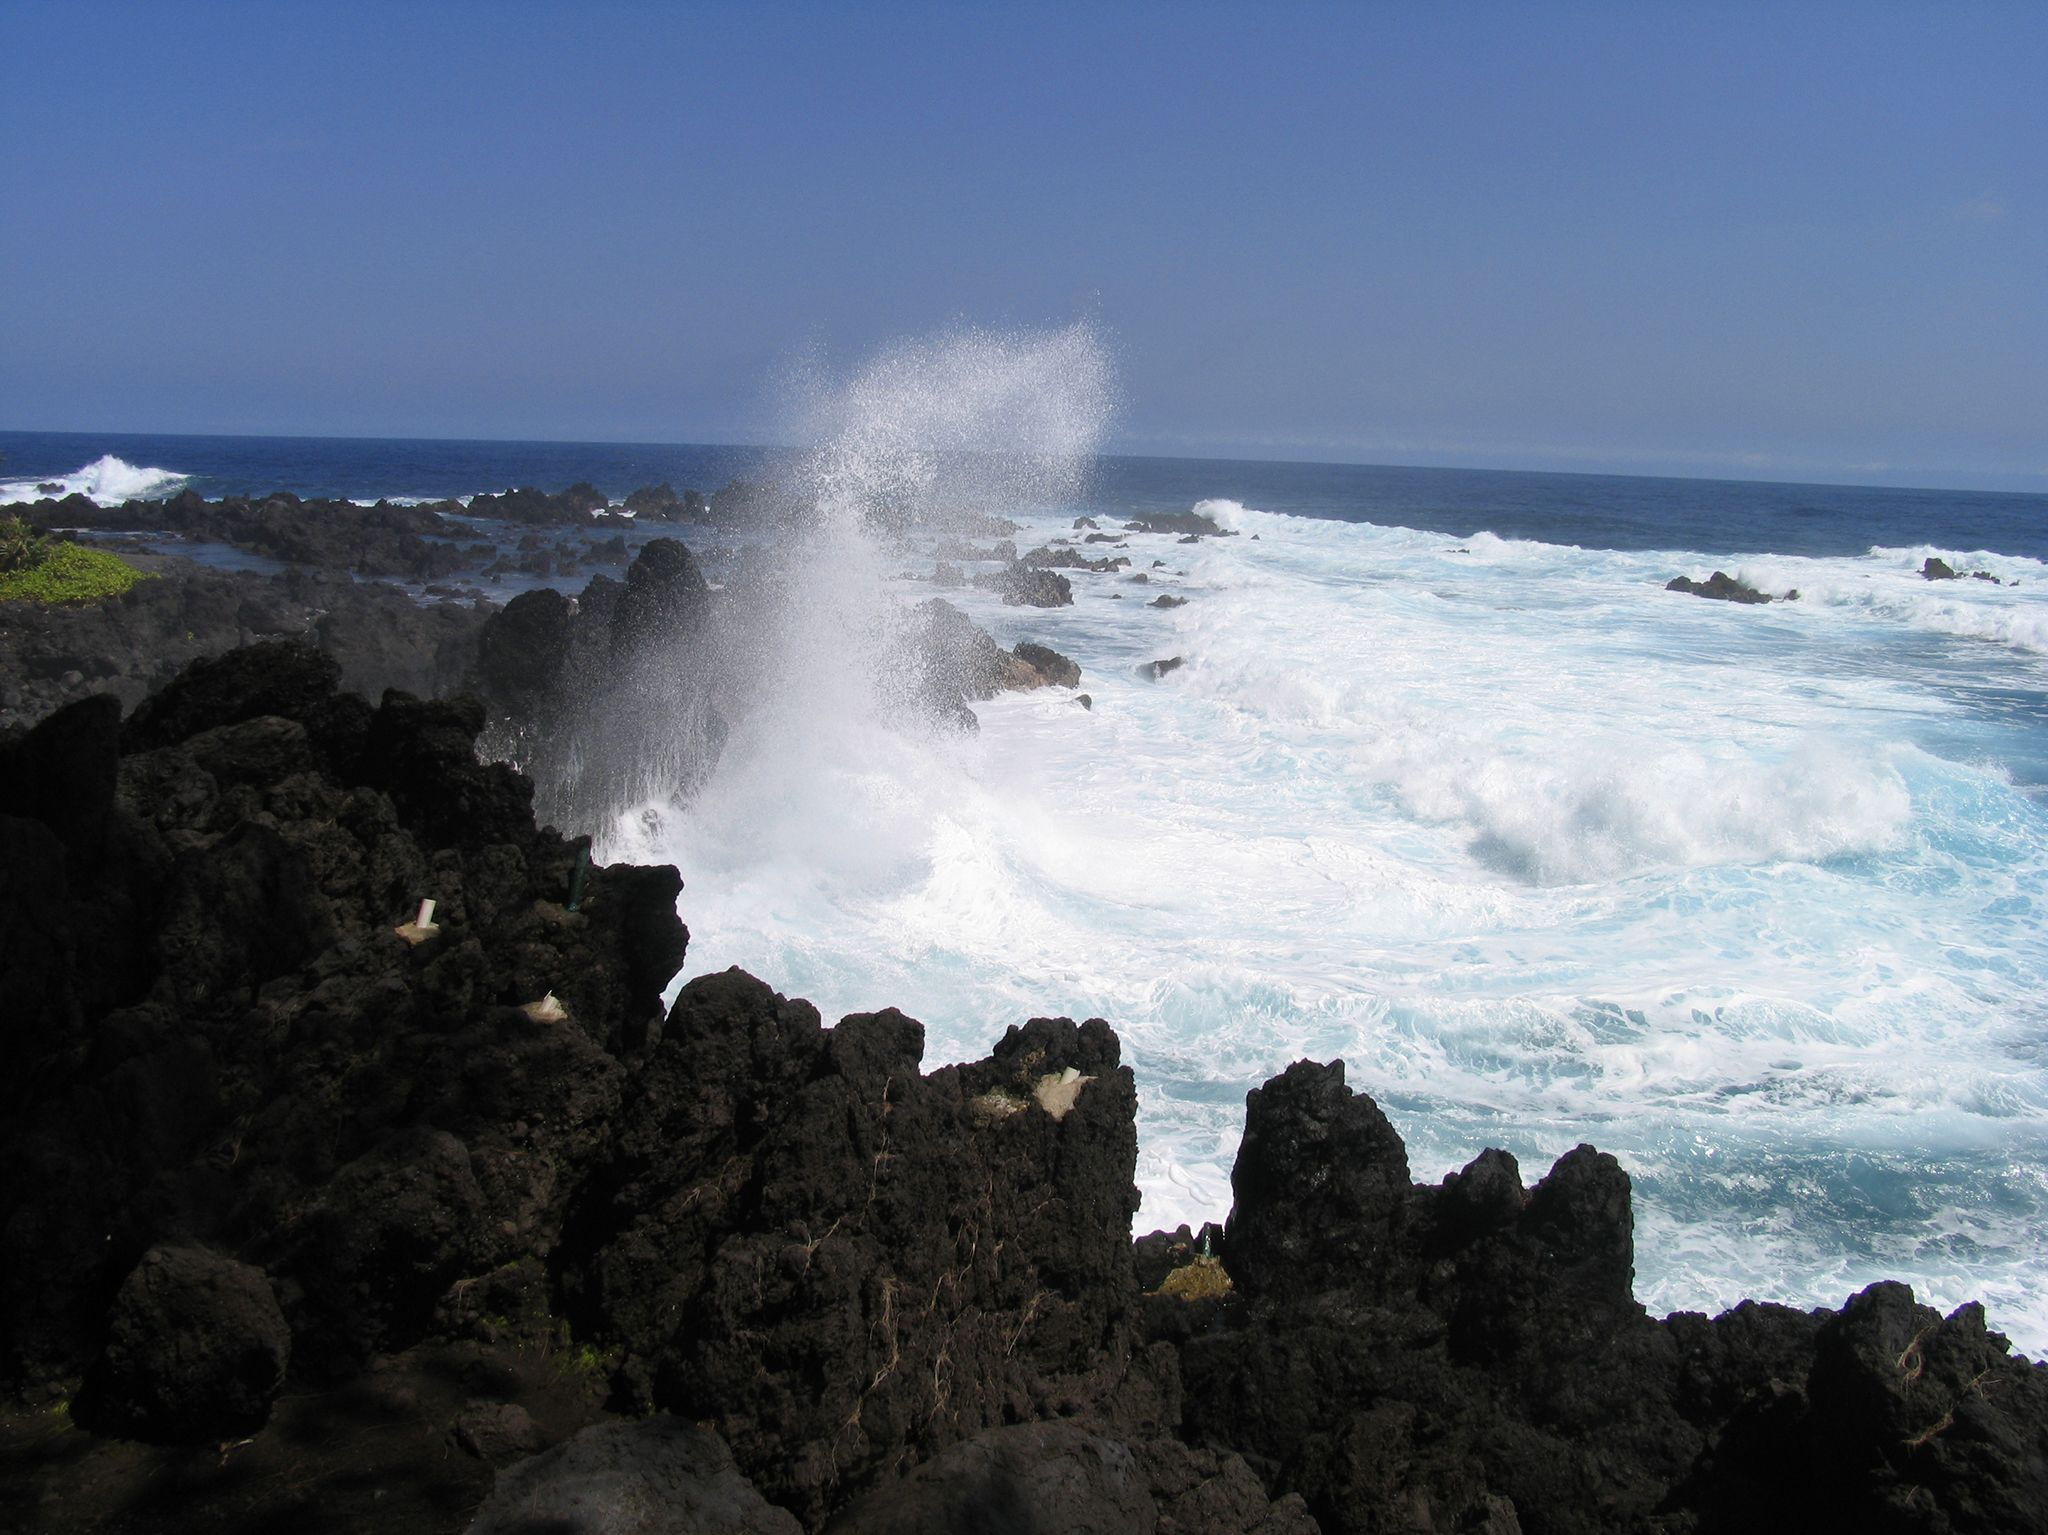 Black lava rock jutting out of the ocean at picturesque Laupahoehoe Park. This image is from... [Photo of the day - April 2020]